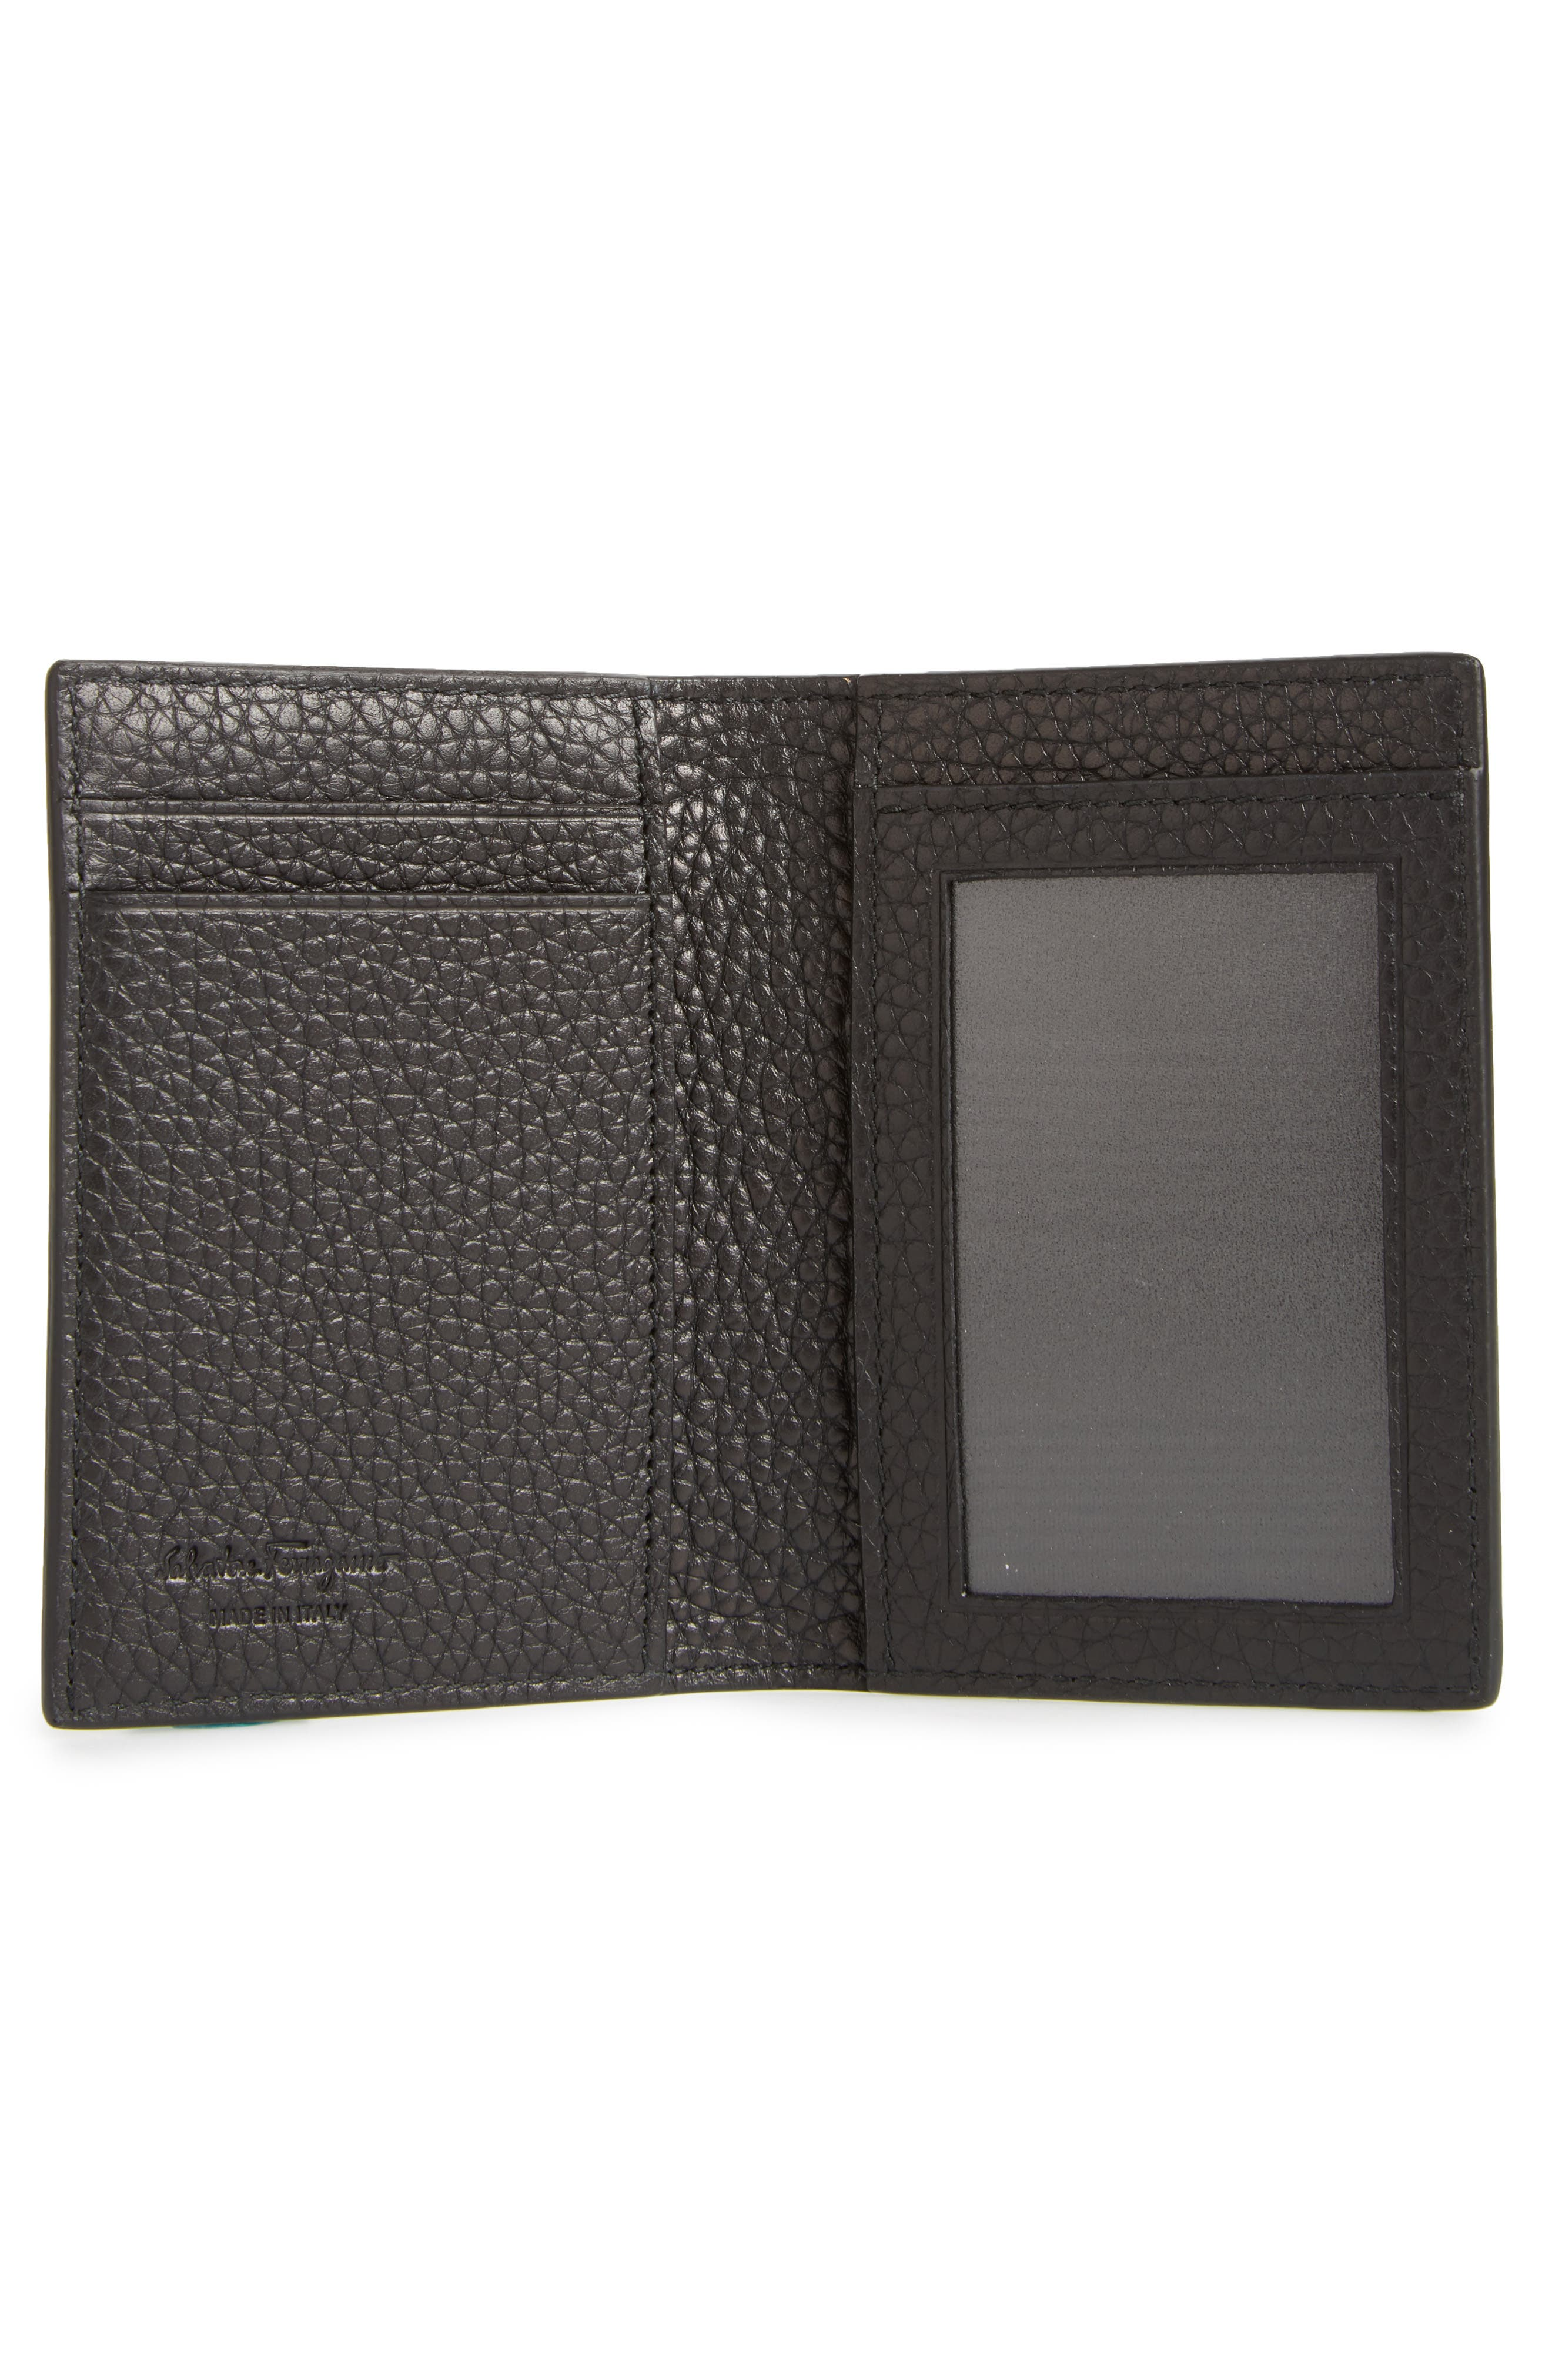 Firenze Leather Folding Card Case,                             Alternate thumbnail 2, color,                             Black